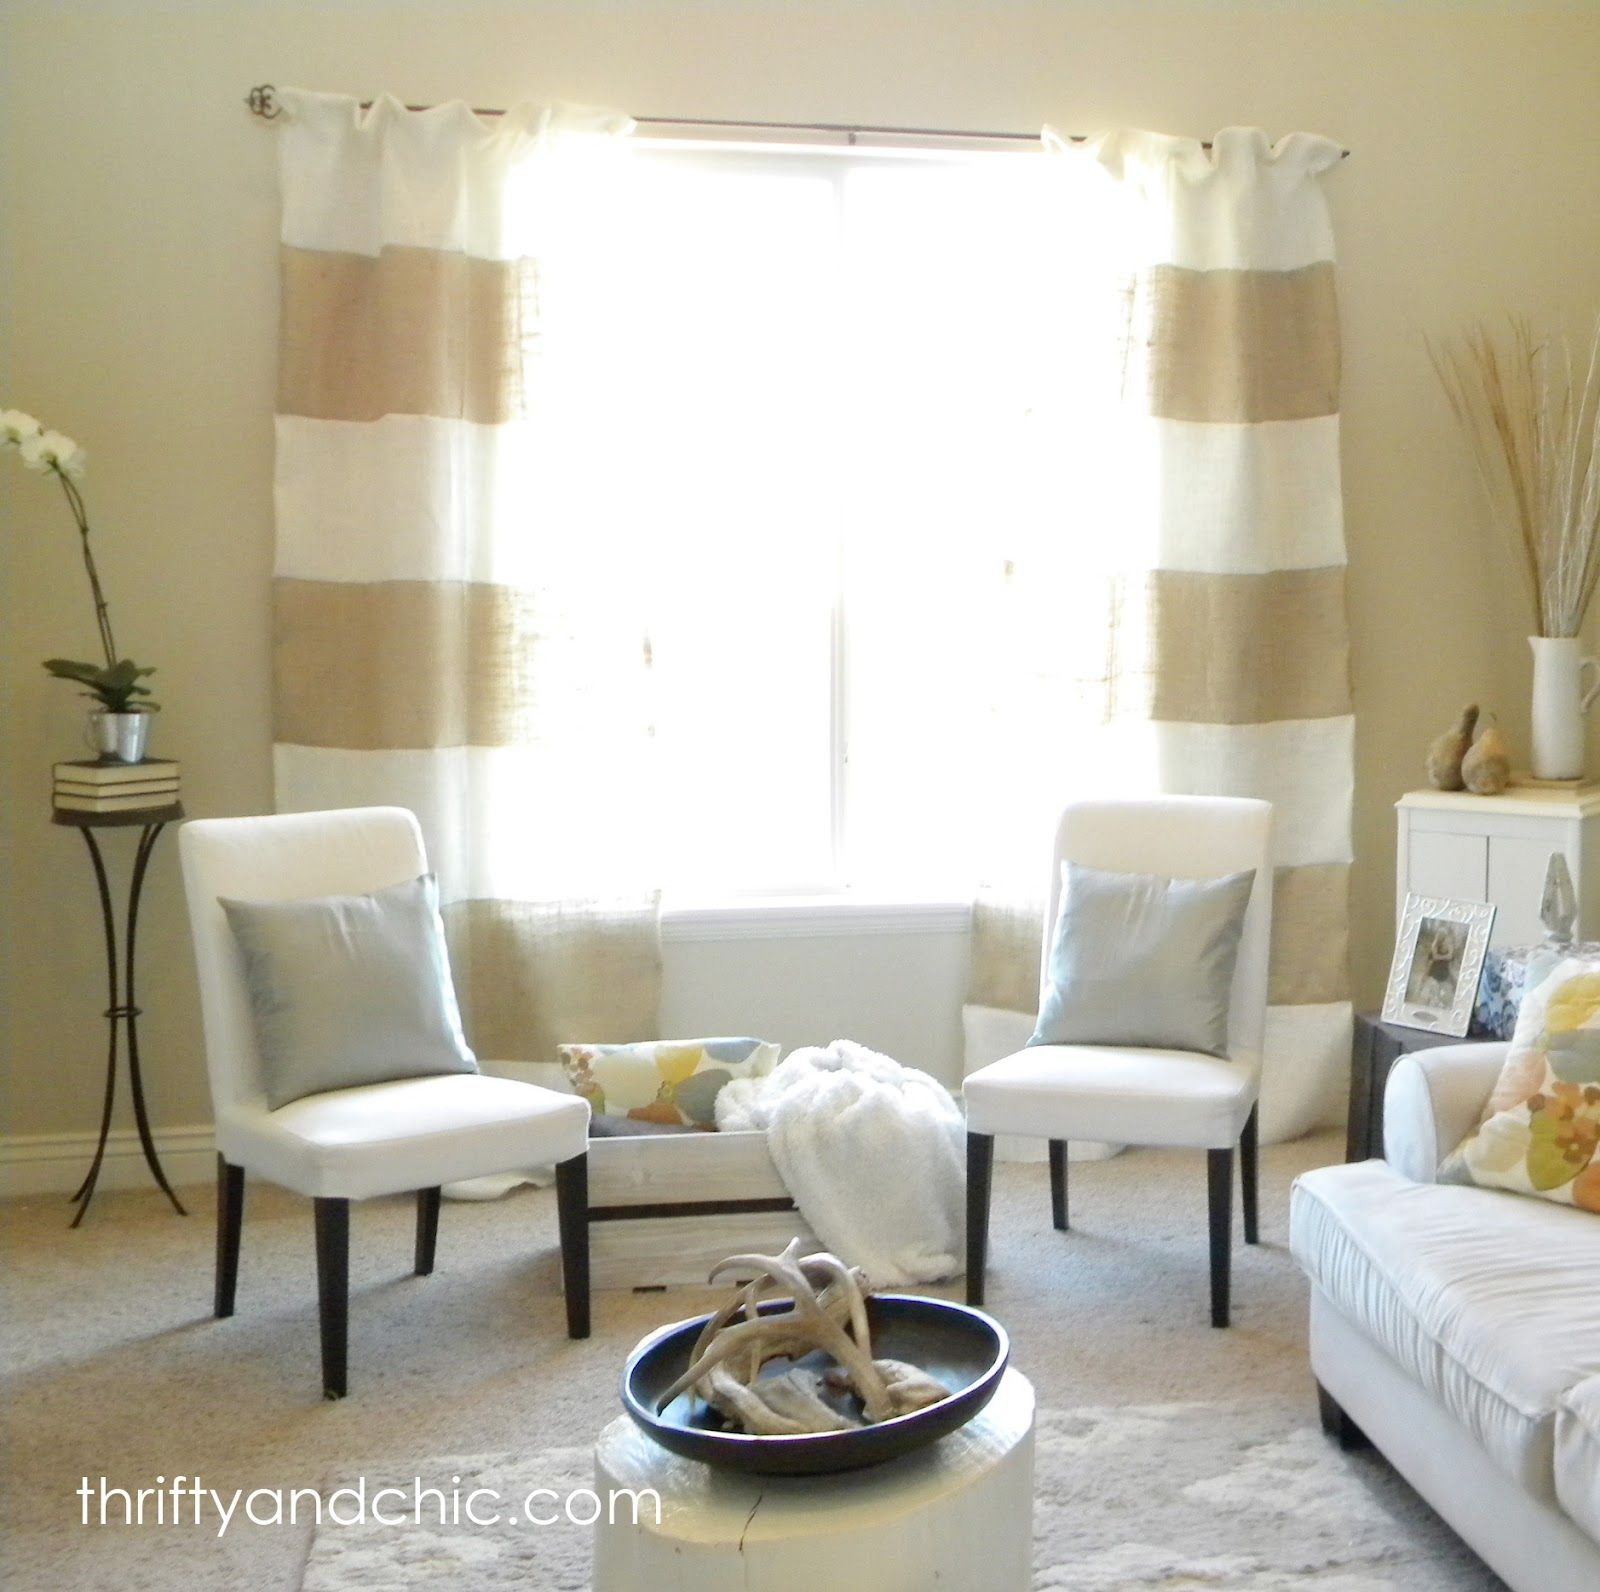 Striped Living Room Curtains Thrifty And Chic Striped Burlap Curtains How To Make Striped